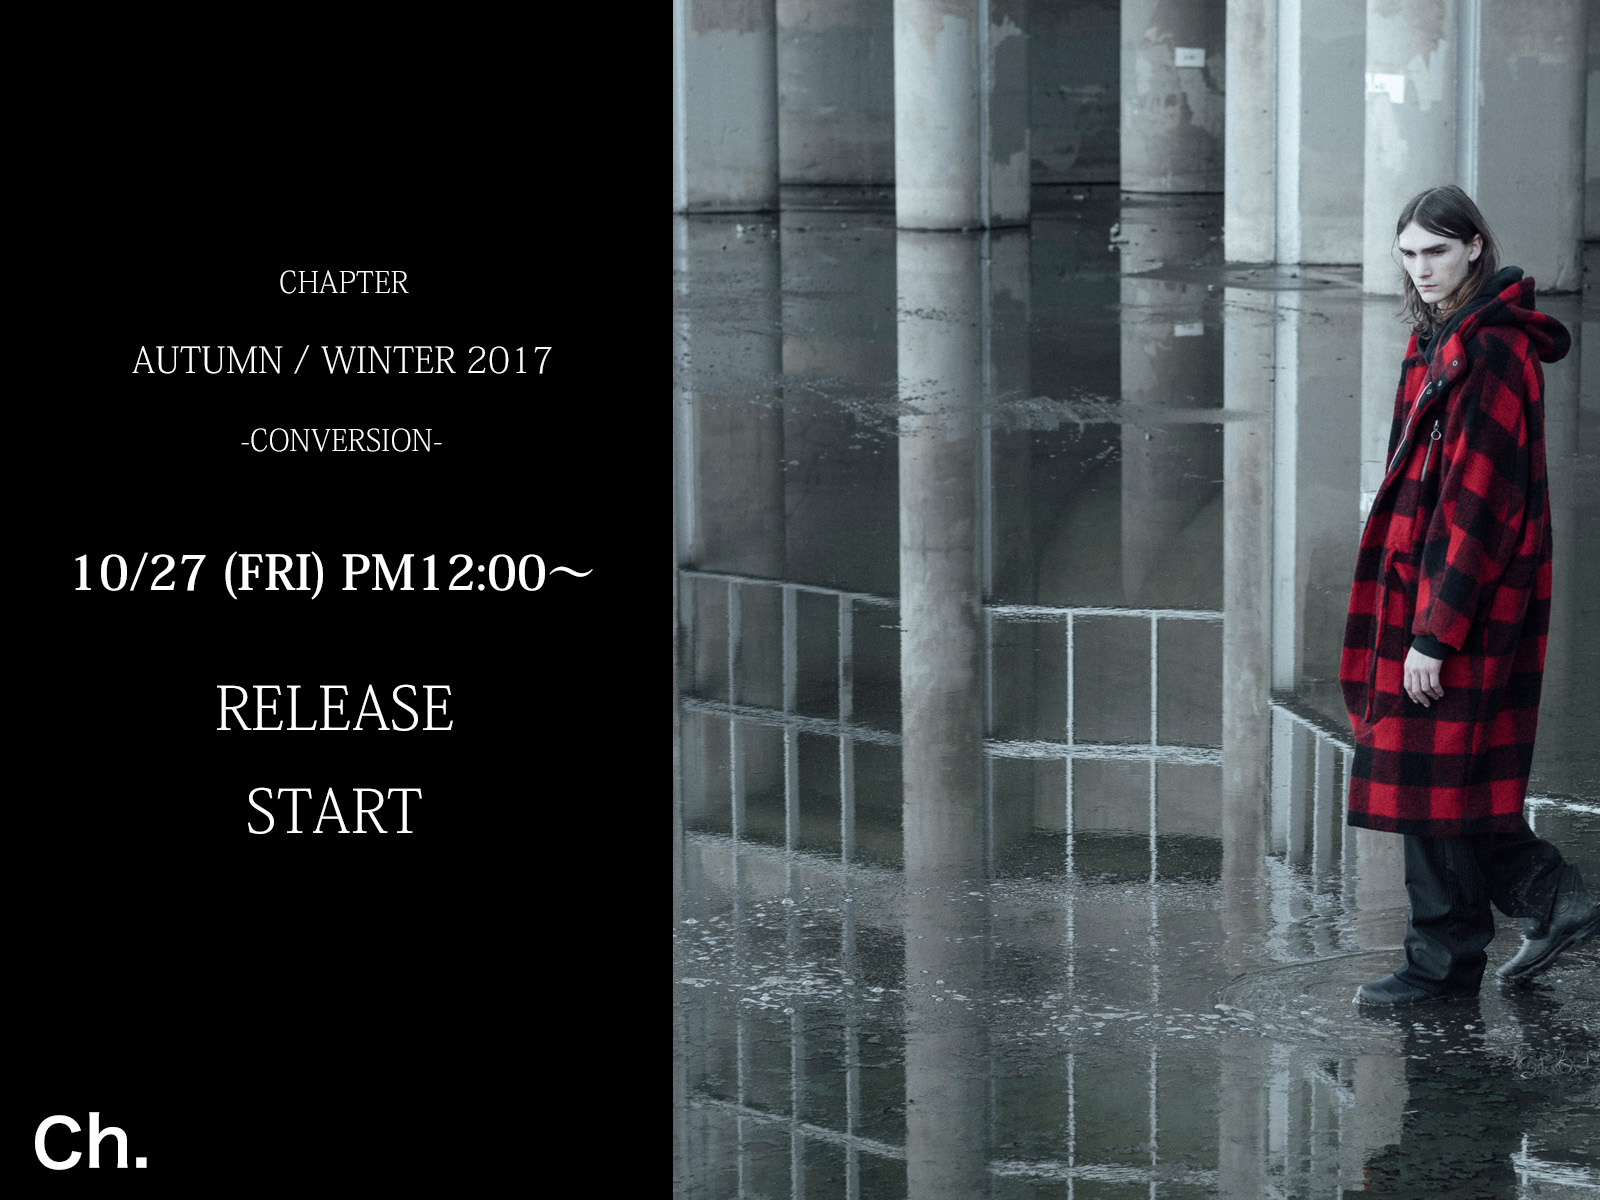 CHAPTER AUTUMN/WINTER 2017 販売開始